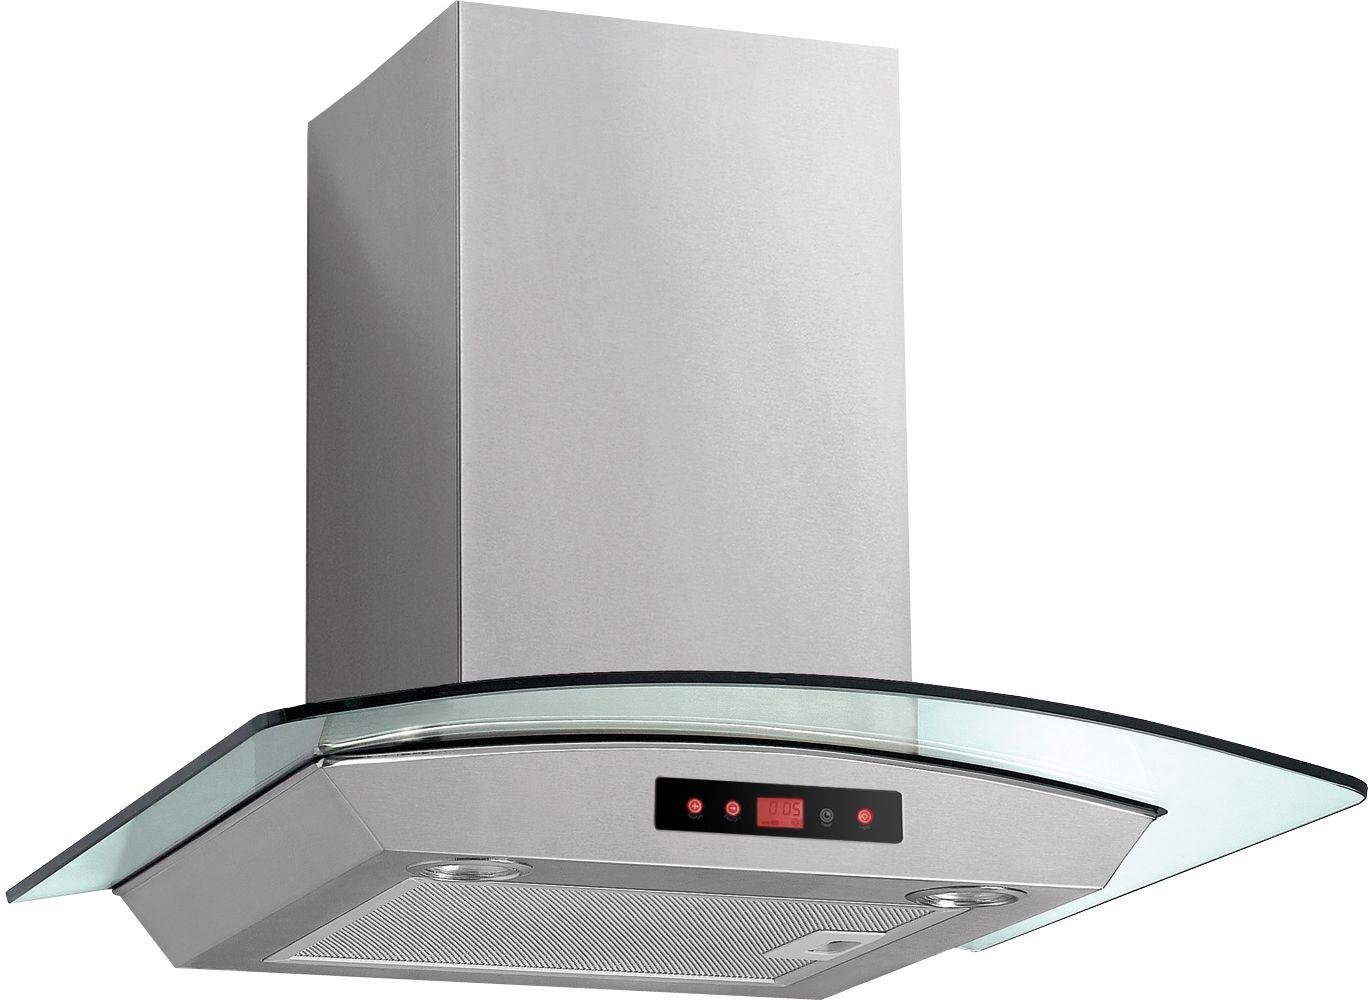 Image of Baumatic BTC6750GL 60cm Glass Cooker Hood - Stainless Steel